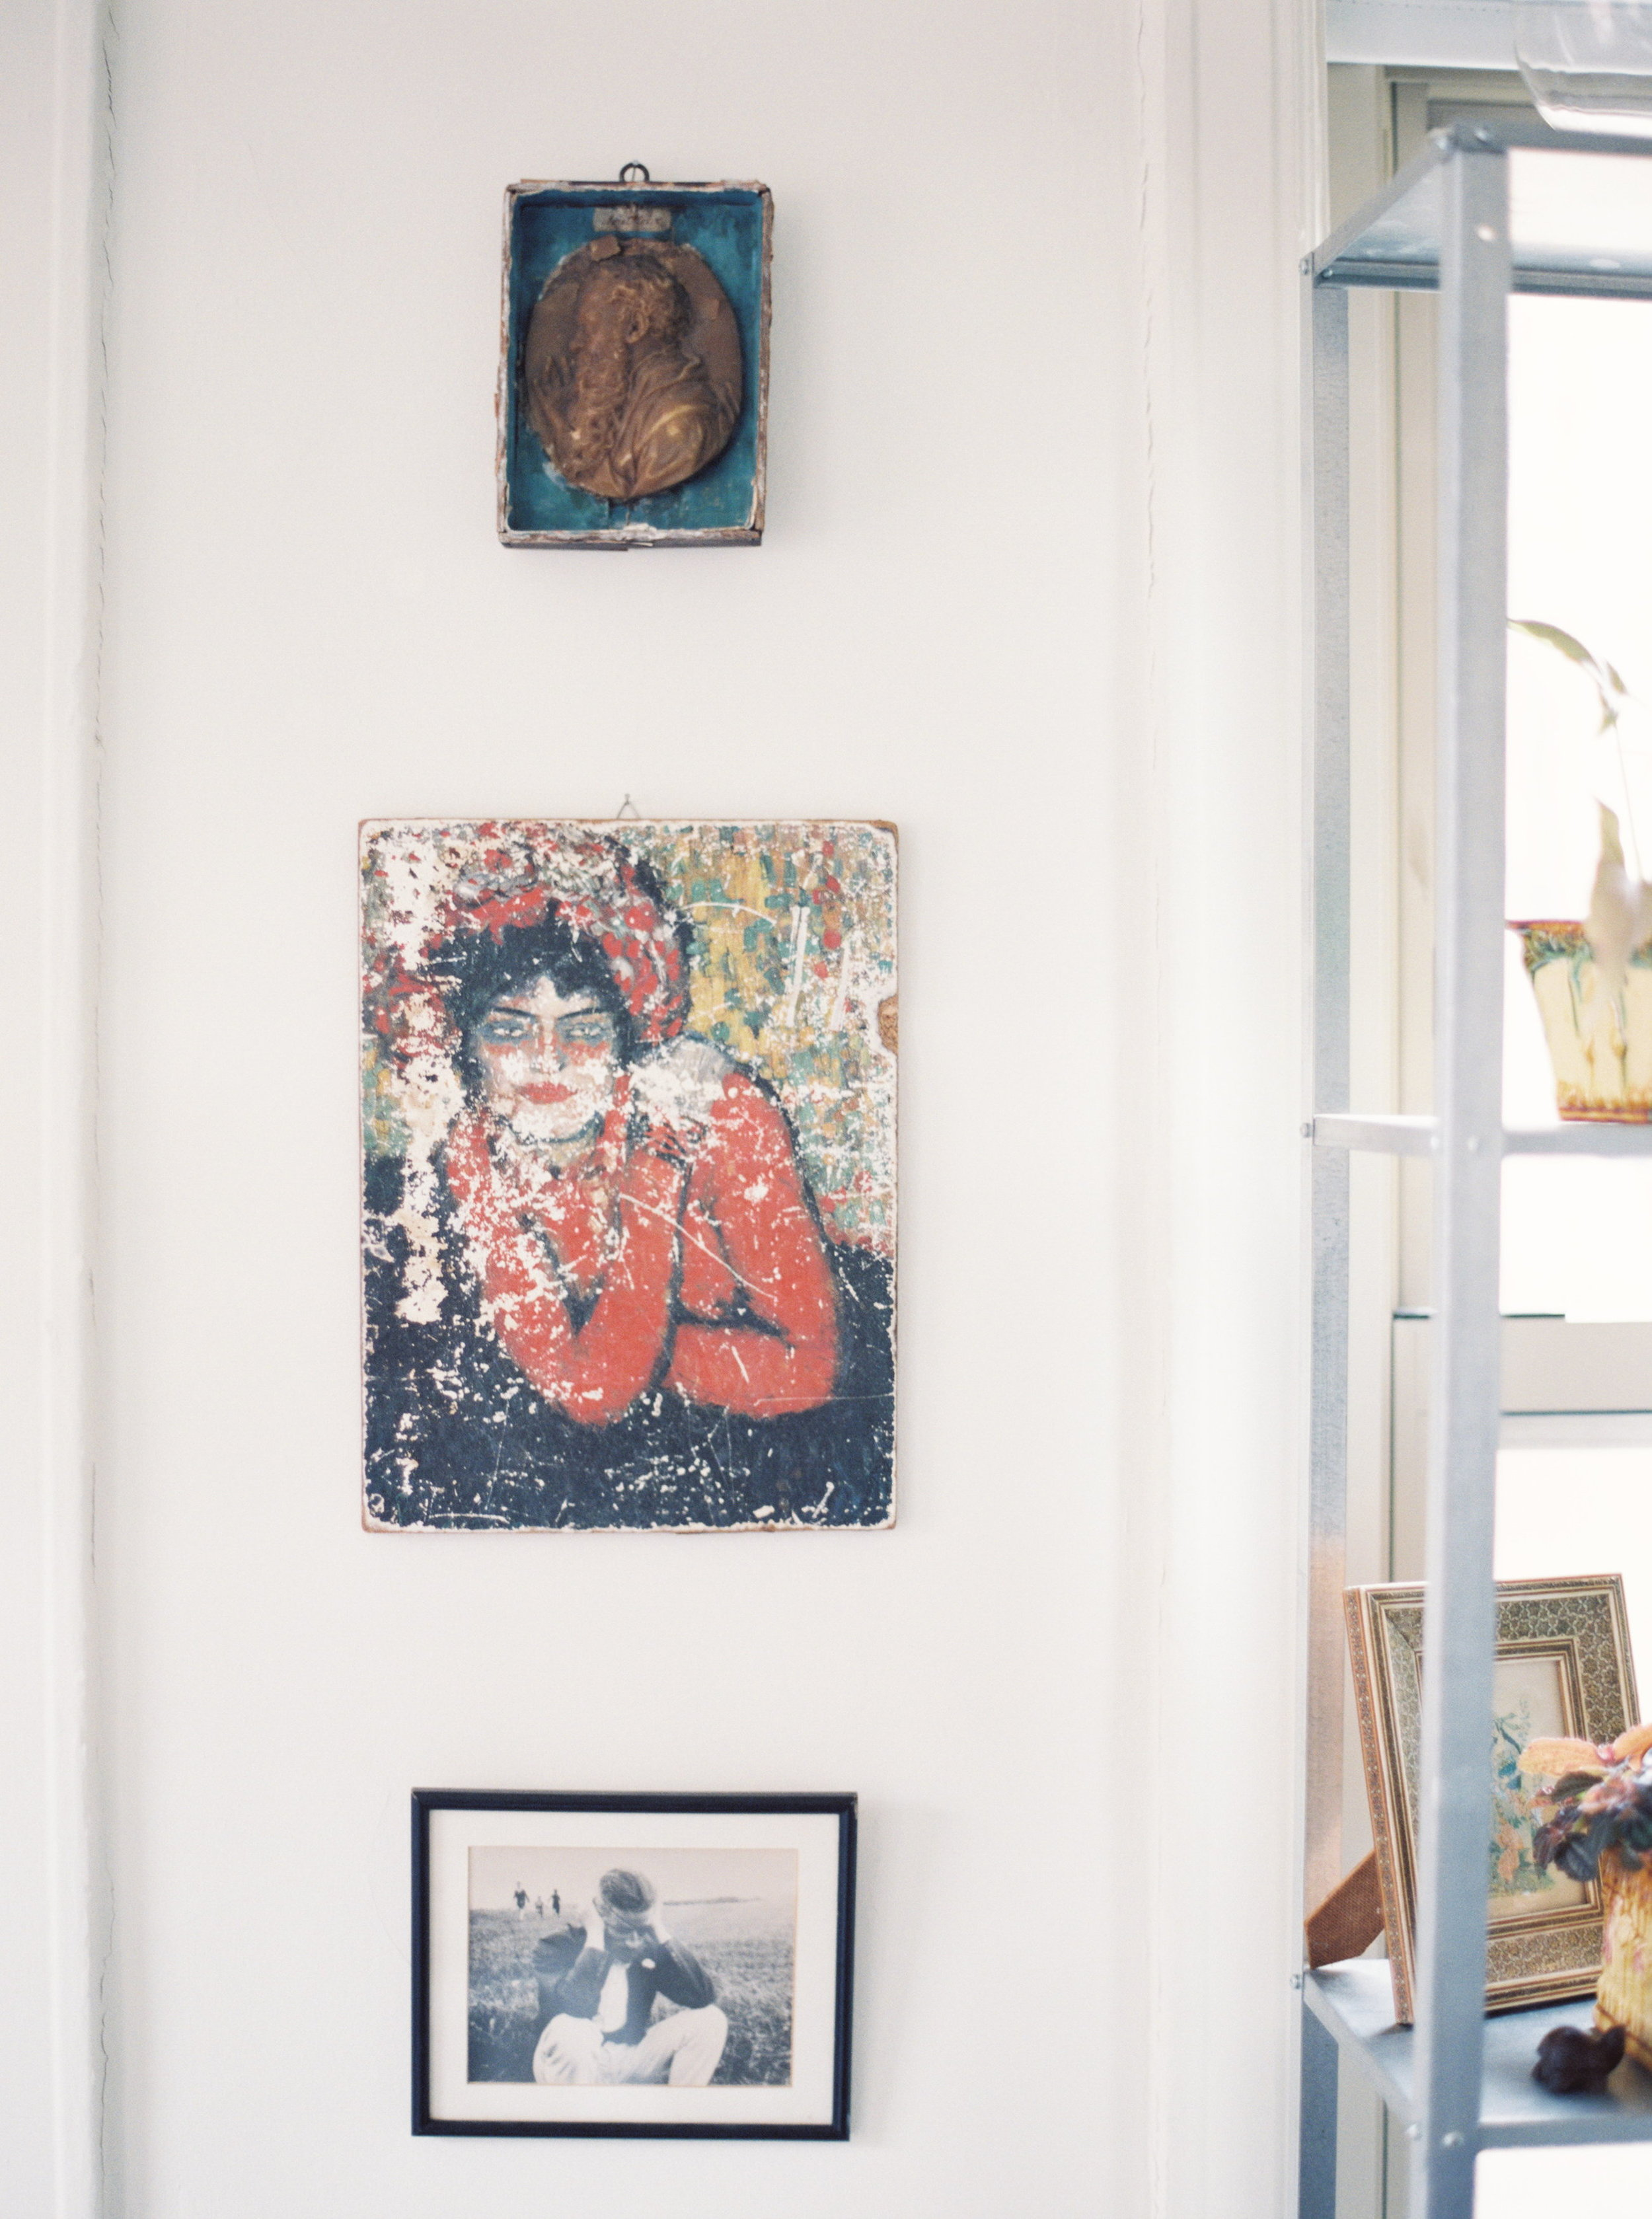 These three hang in my office, and each has a special spot in my heart. Thetop is a very old wax mold of Aristotle. I found it in a junk shop years ago and bought it forlike $1. That was before I went back to school for Philosophy. The middle painting is oneof my absolute favorite things. When I was in Athens, Greece in 2003 (a trip with Danieland friends) the trash collectors had gone on strike and so the streets were filled withtrash  and of course we all went digging around in it for treasures. We weren't the onlyones scavenging, there were some locals with wheelbarrows trash picking to try to resellthe goods. I saw this piece in one fella's wheelbarrow and convinced him to sell it to mefor 2 euro. I packed it around Europe and then home - totally worth it. The bottom photo isanother alltime favorite. I found it at Lakewood Antique Mart in the outside vendor area inboxes of junk set out for folks to pick through. I don't remember how much I paid for it, butit was cheap. I feel like it is perfect in my office, it captures my ever constant pensivemood when working. I didn't find out that it is a photo of James Joyce until one day in ameeting with one of my favorite philosophy professors at Temple University, KristinGjesdal - I was looking around her office and spotted the exact same photo on her bulletinboard and asked her about it. Somehow it became even more special after that.